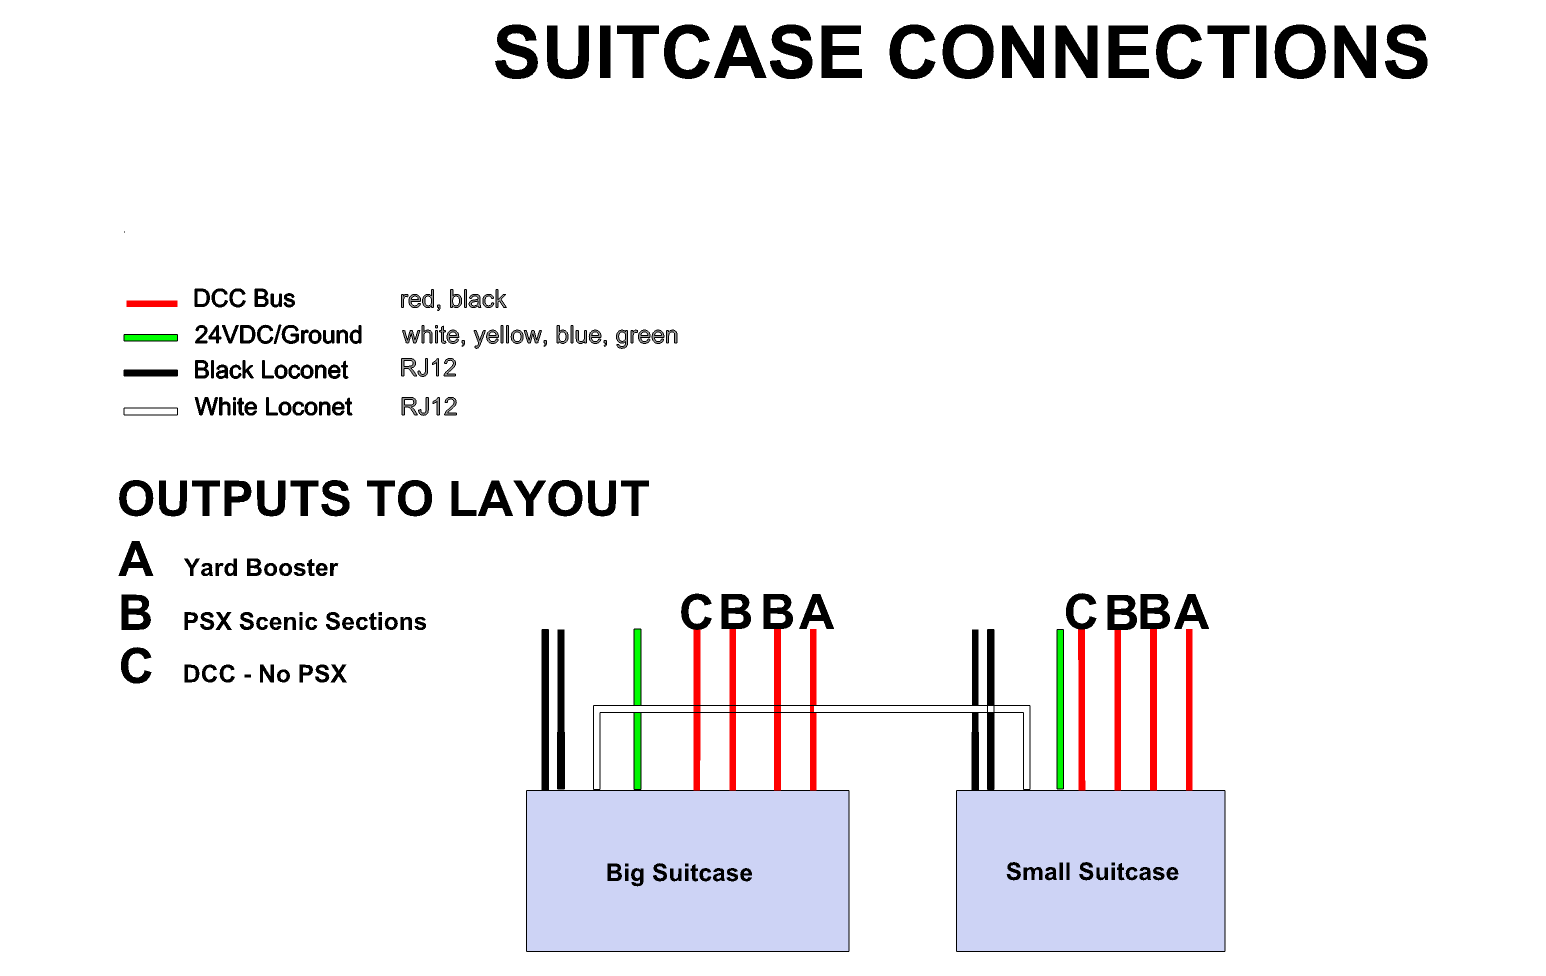 Loconet Dcc Wiring Diagram Schematic Diagrams Track Bus Amrg N Scale Modular Ho Model Railroad Of The Suitcase Connections